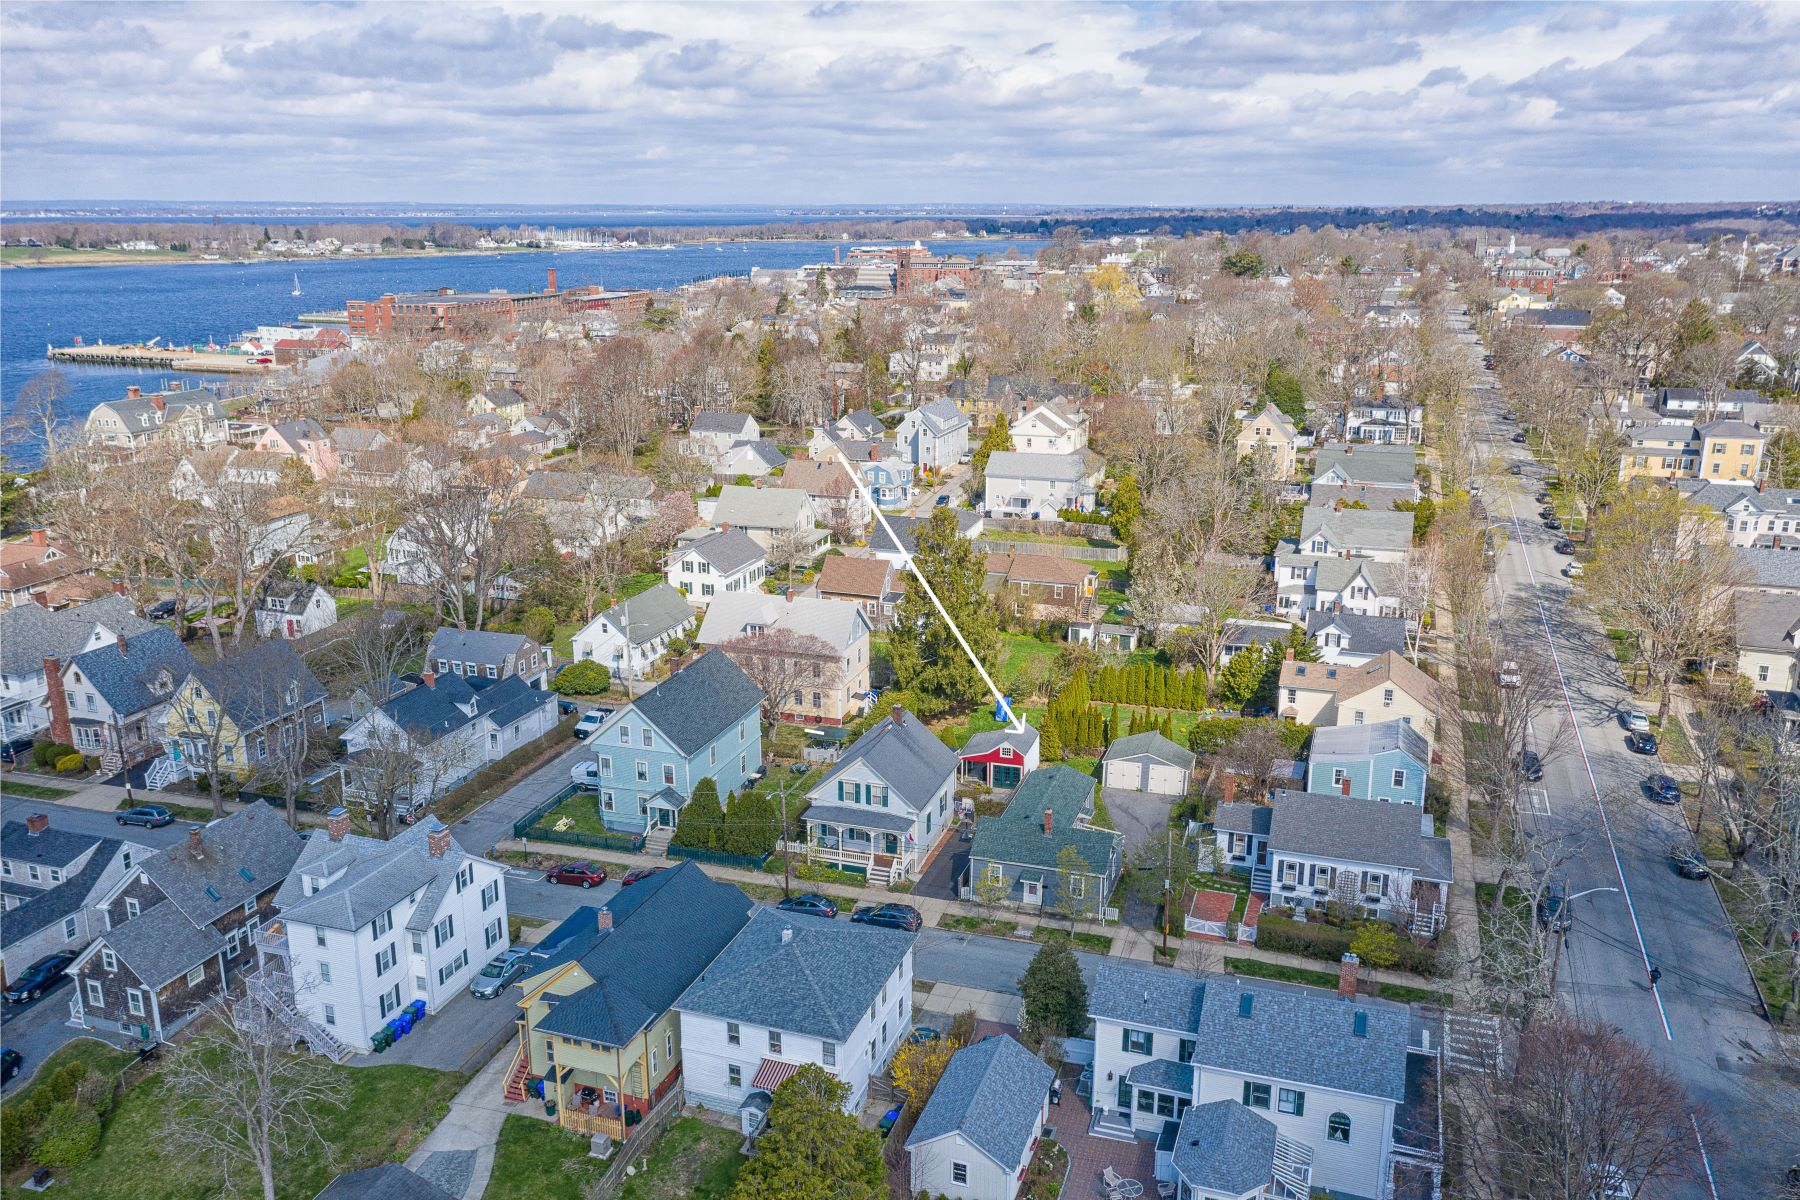 Single Family Homes for Sale at 37 Burton Street, Bristol, RI 37 Burton Street Bristol, Rhode Island 02809 United States